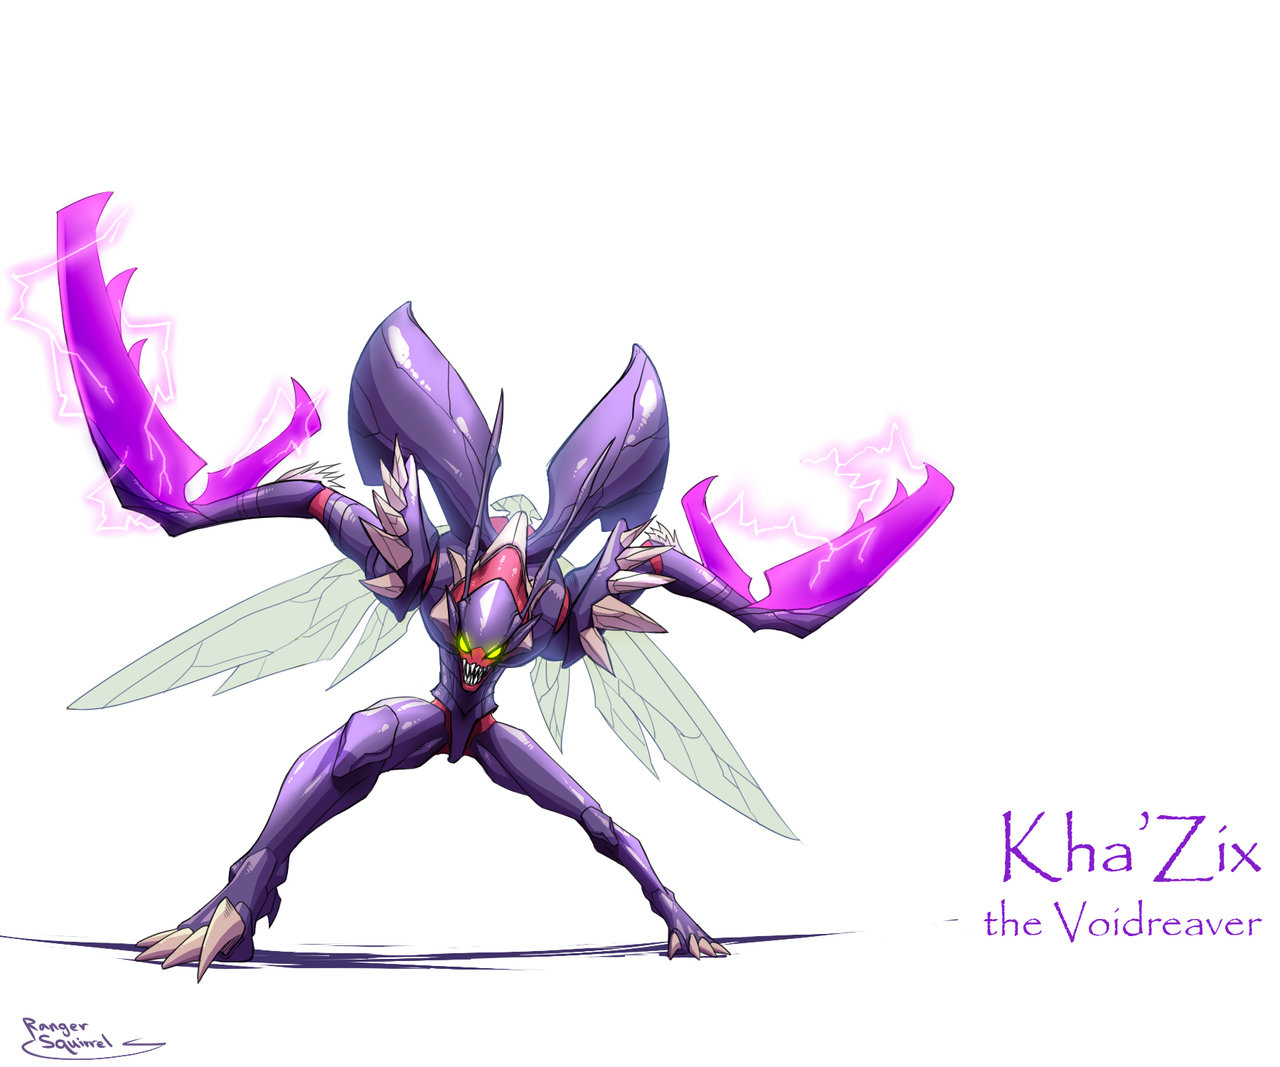 League-Of-Legends-фэндомы-Kha'Zix-936752